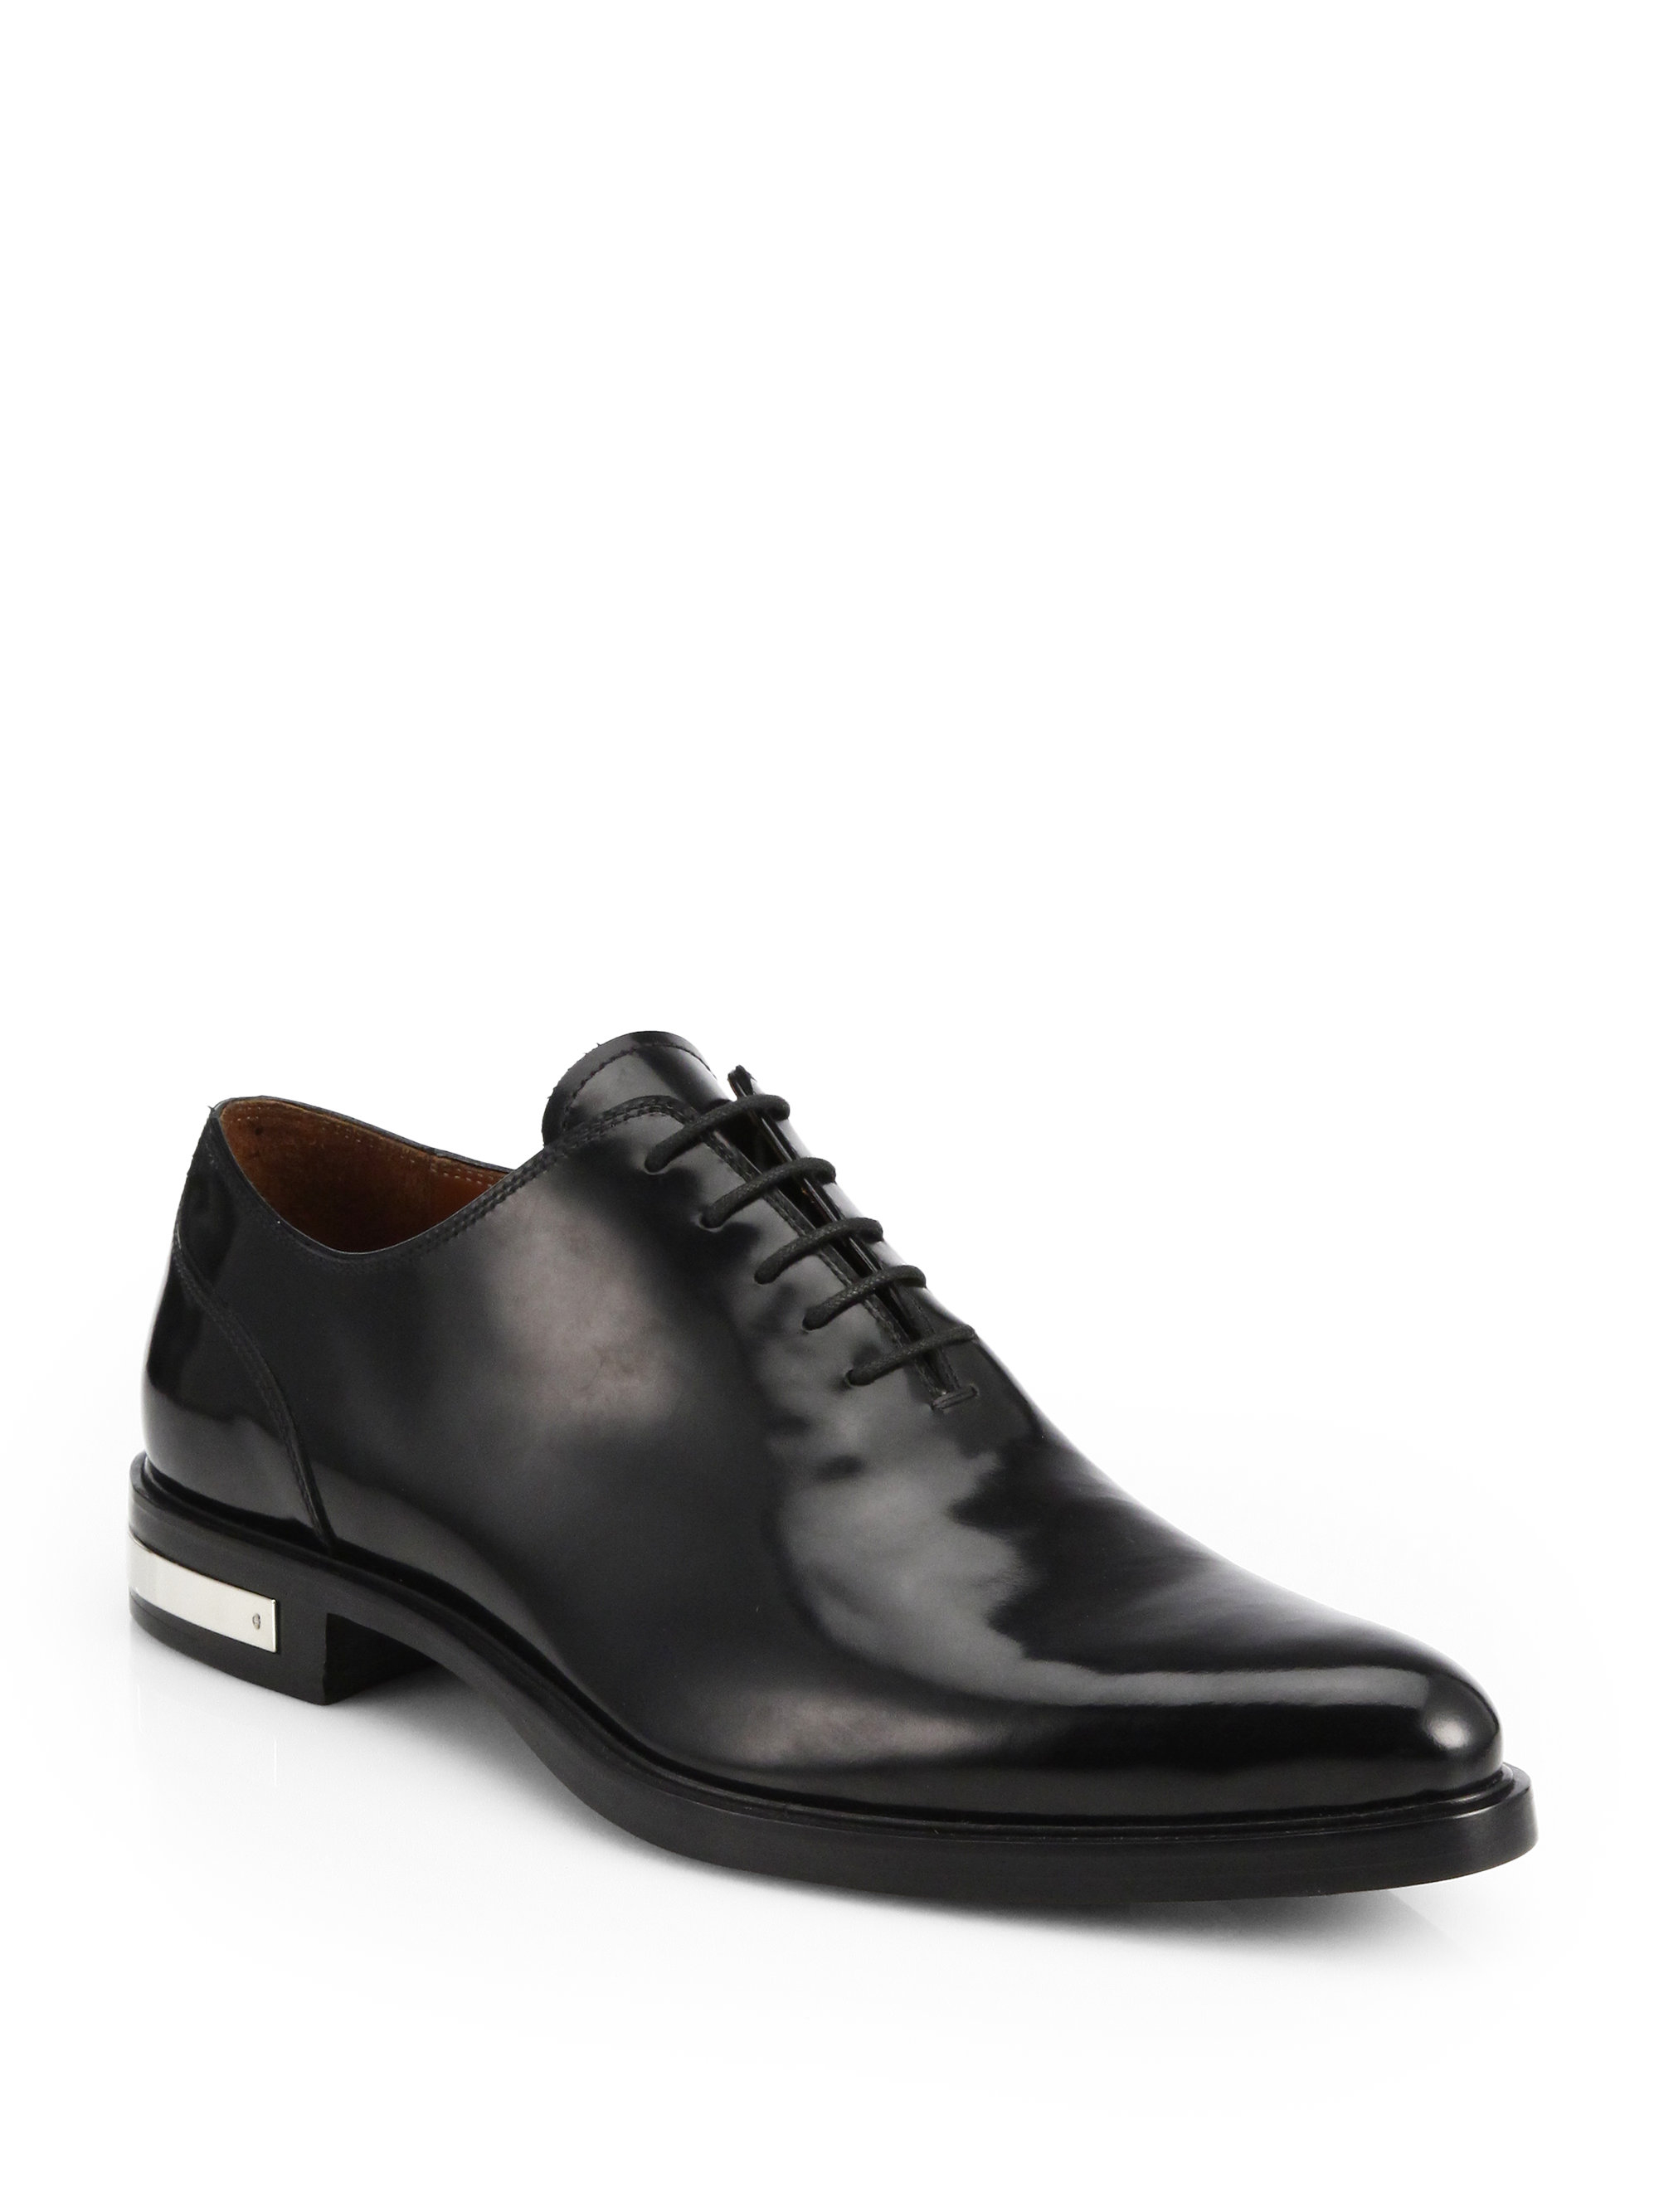 Lyst - Givenchy Richelieu Lace-Up Dress Shoes in Black for Men e5178c6ef2dd